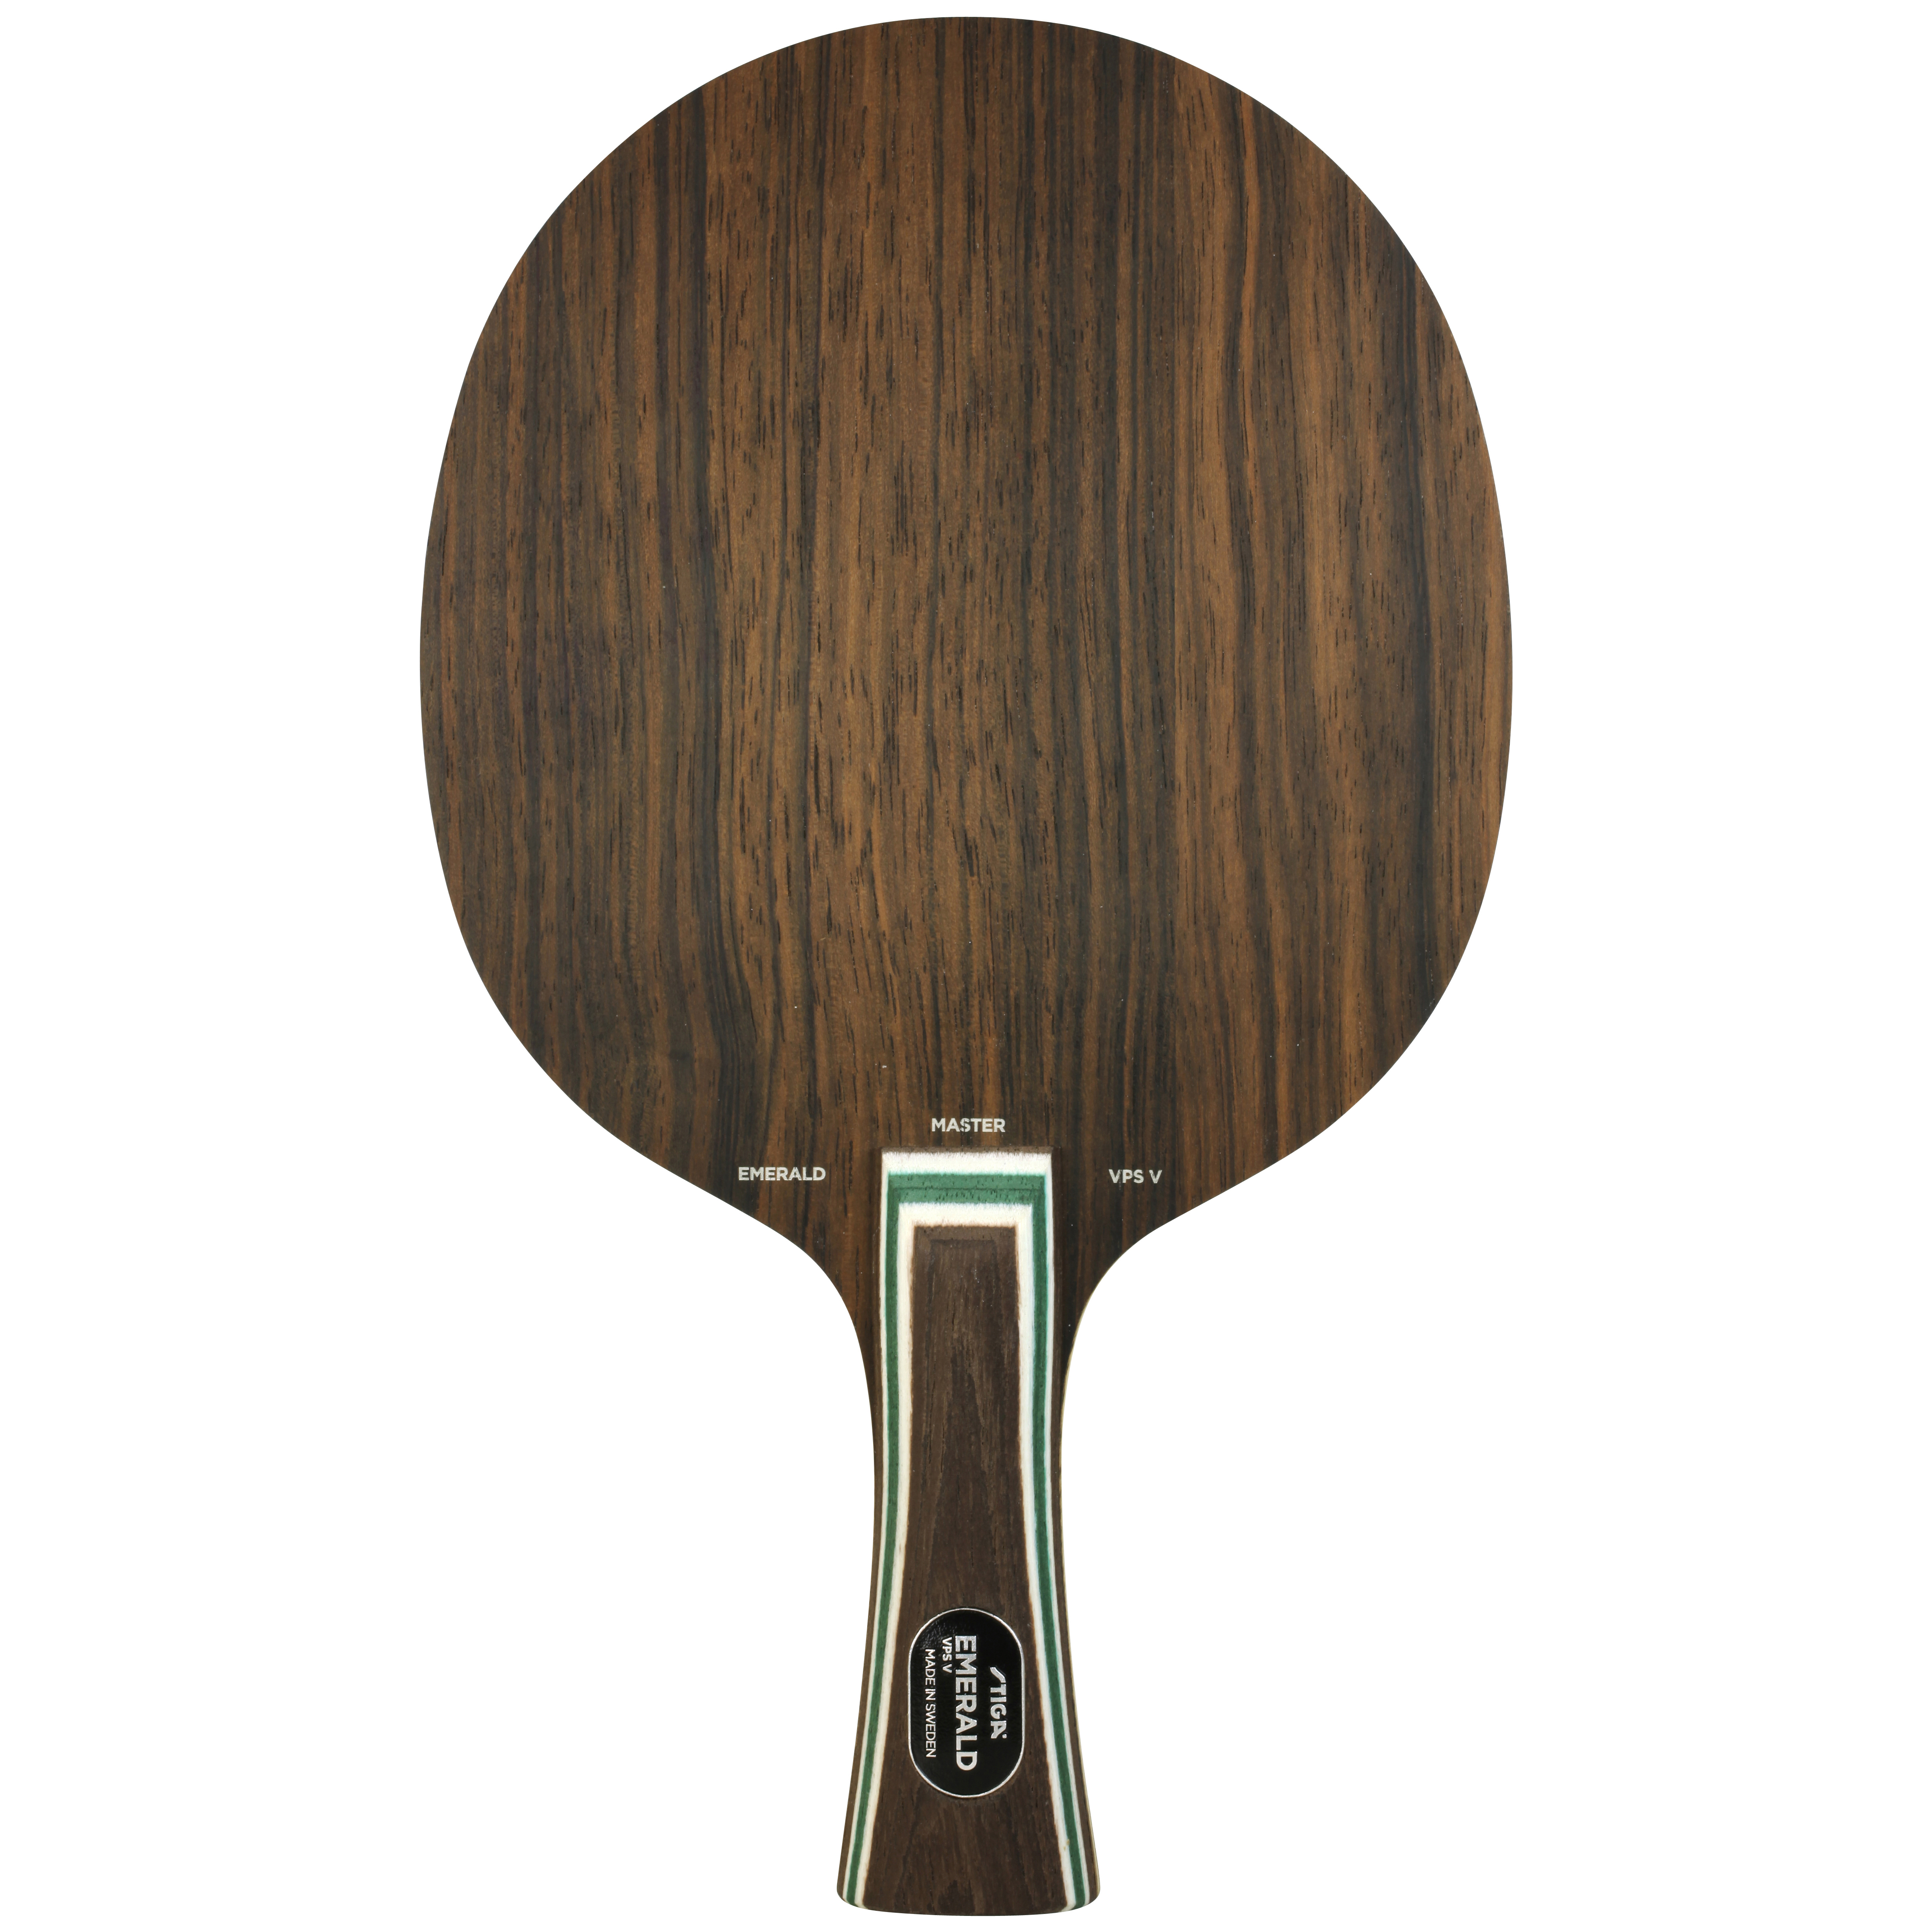 Emerald VPS V Table tennis blade